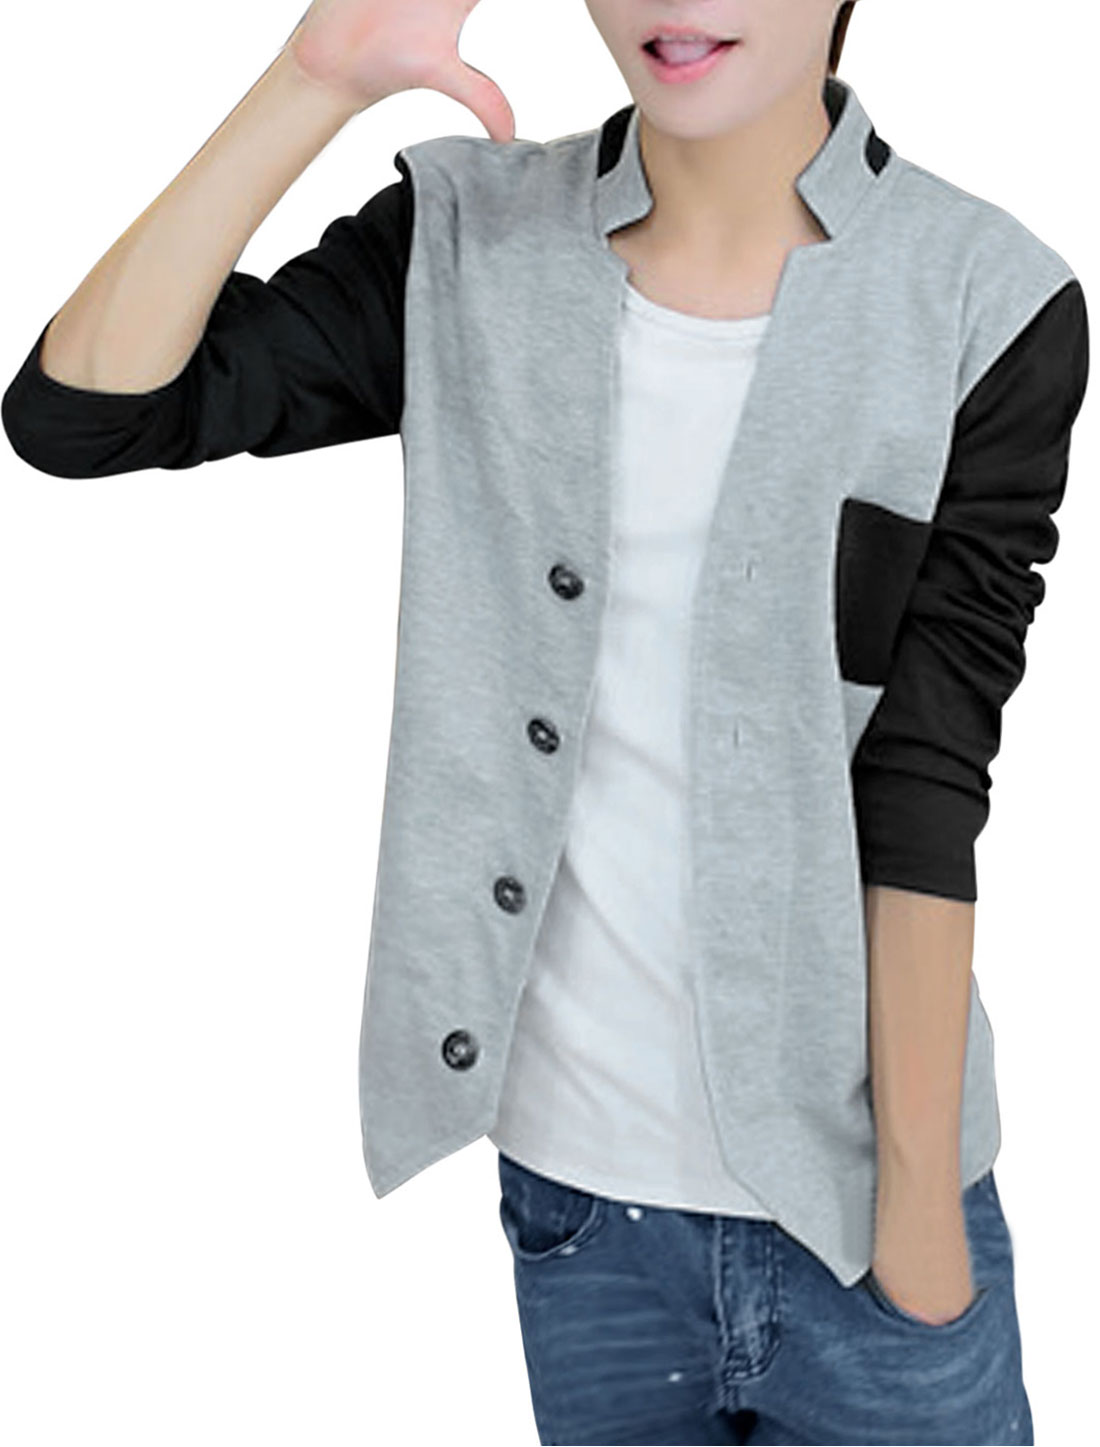 Men Panel Single Breasted Contrast Long Sleeves Casual Jacket Light Gray M